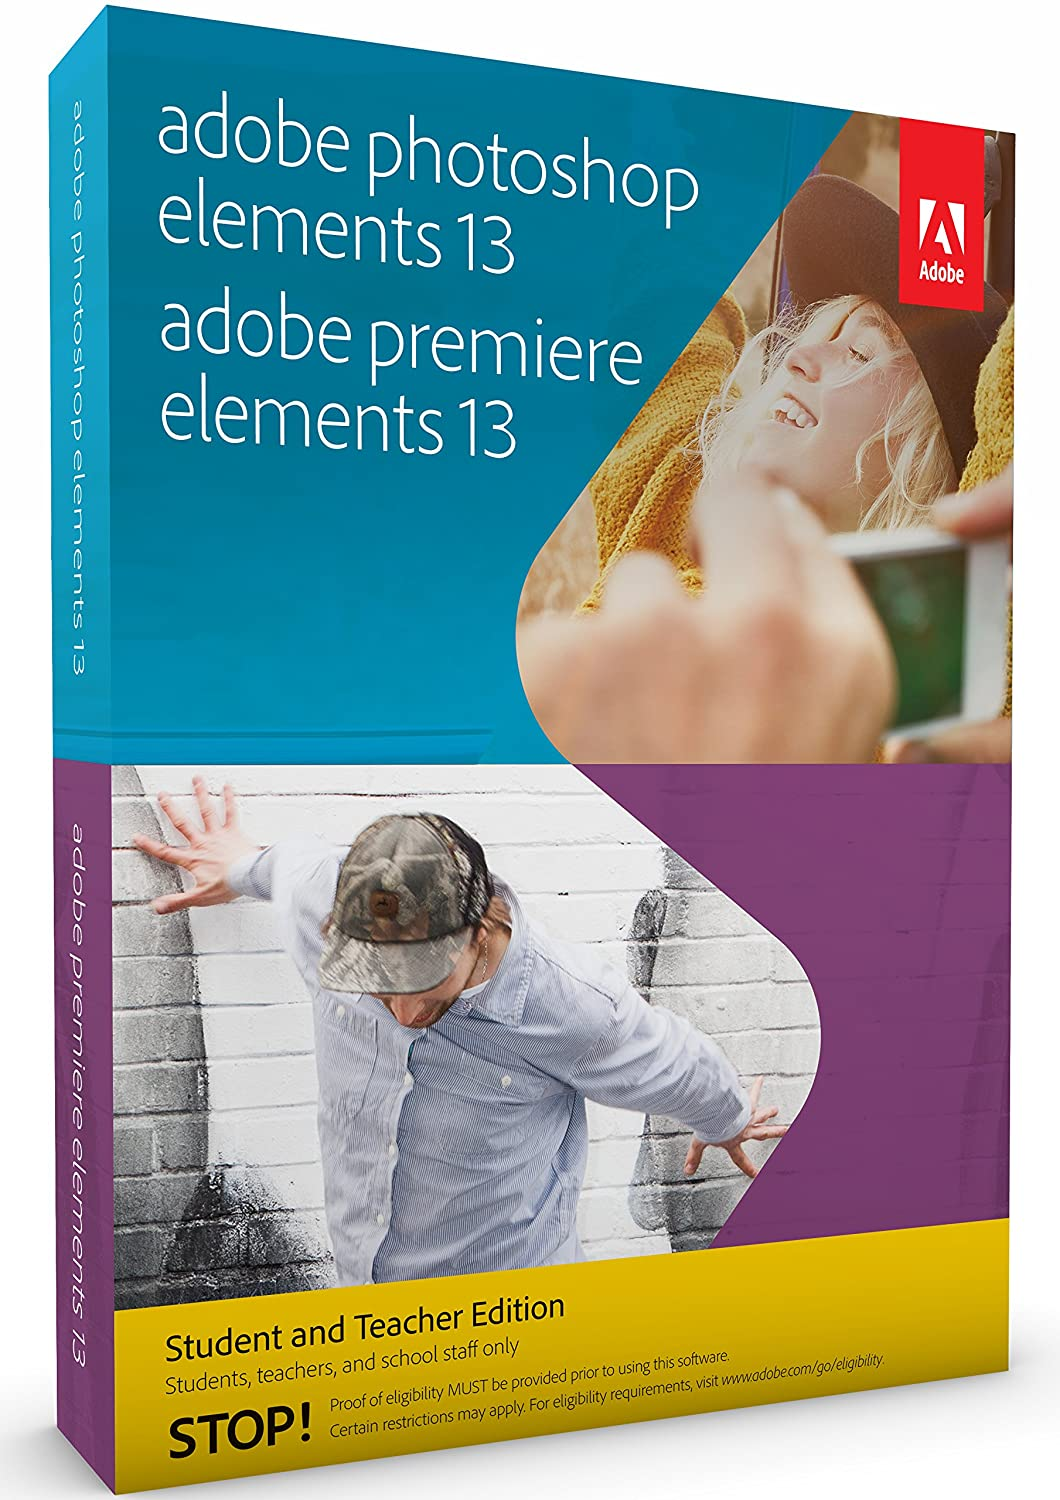 adobe photoshop elements 13 adobe premiere elements 13